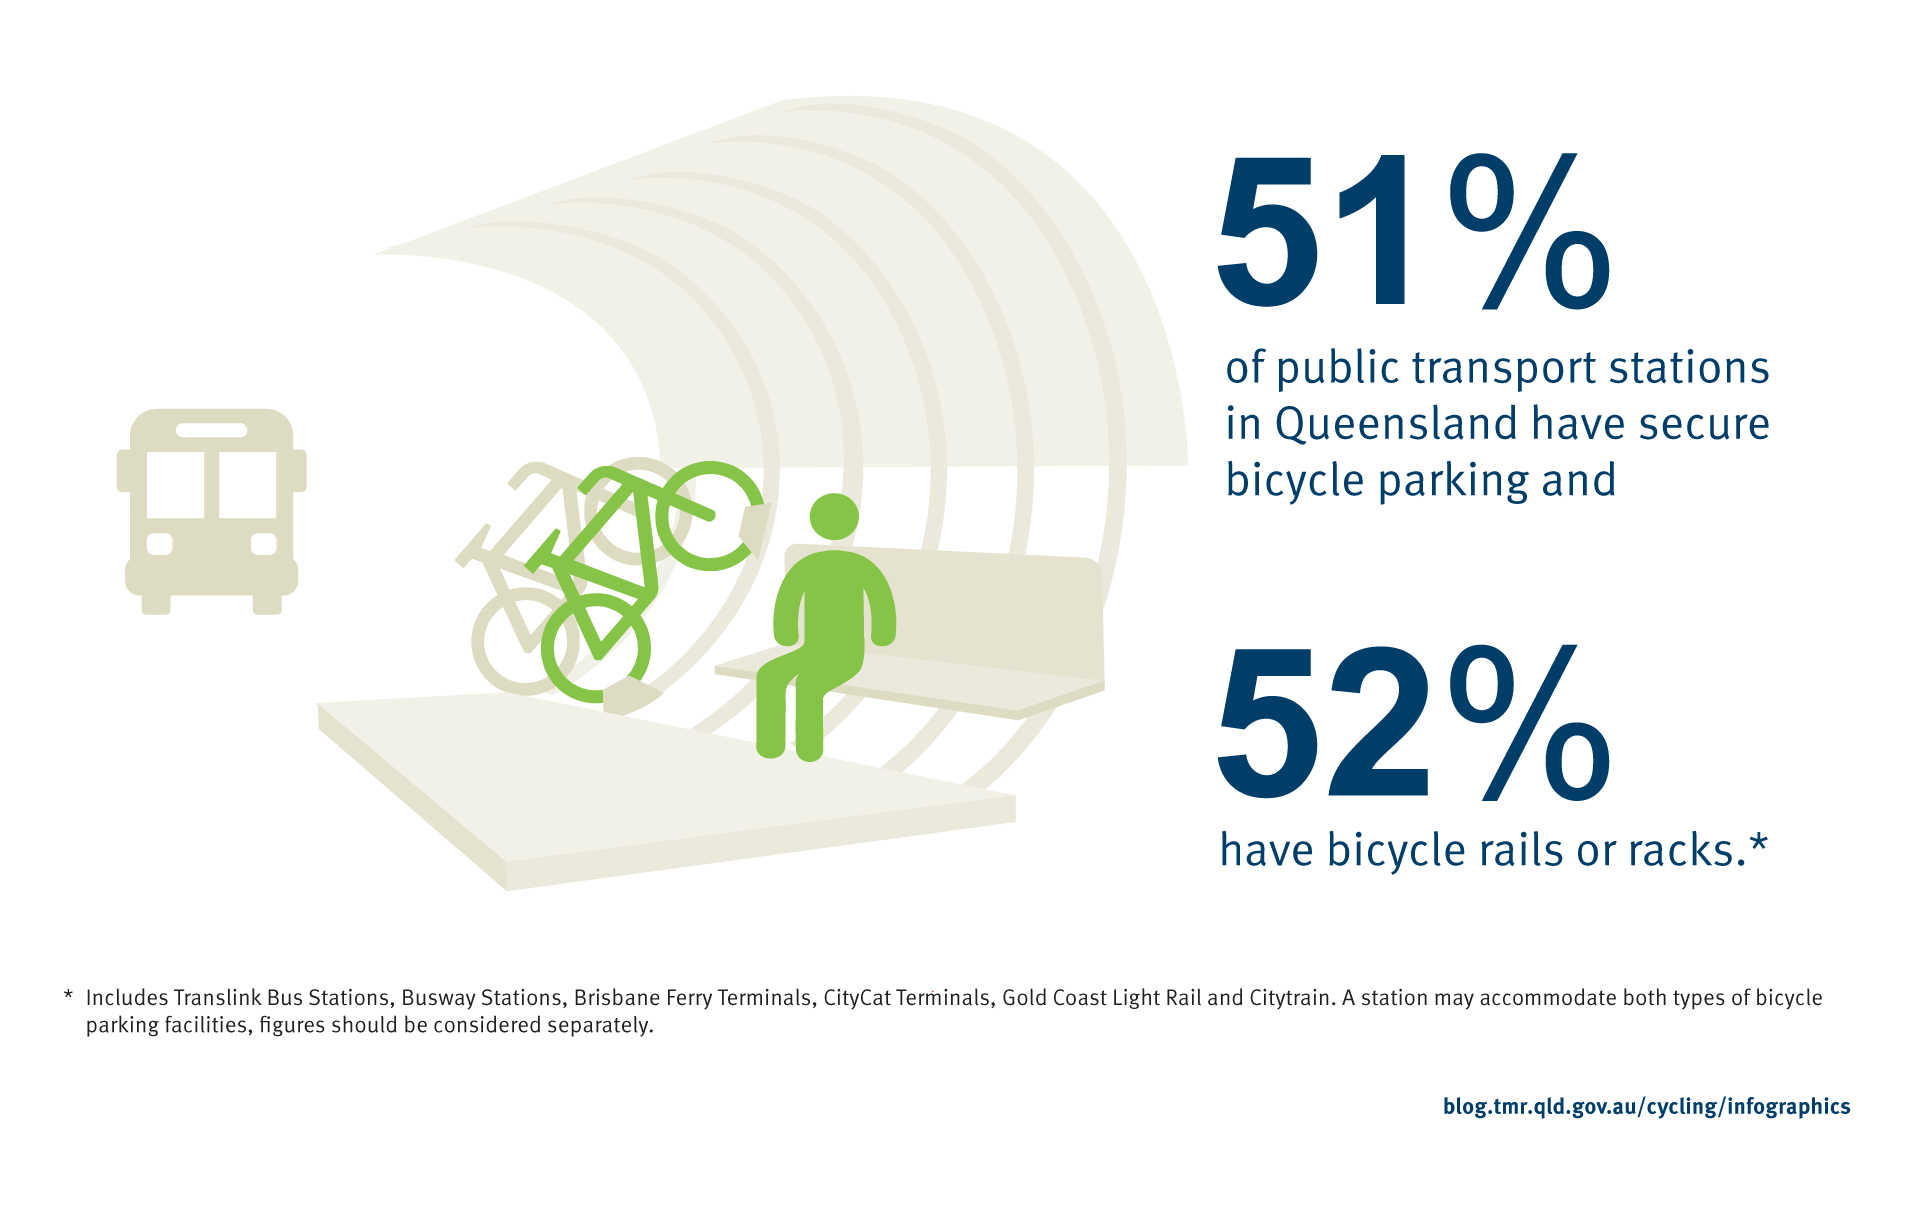 51% of public transport stations in Queensland have secure bicycle parking and 52% have bicycle rails or racks.  *This includes Translink Bus Stations, Busway Stations, Brisbane Ferry Terminals, CityCat Terminals, Gold Coast lightrail and Citytrain. A station may accommodate both types of bicycle parking facilities, figures should be considered separately.